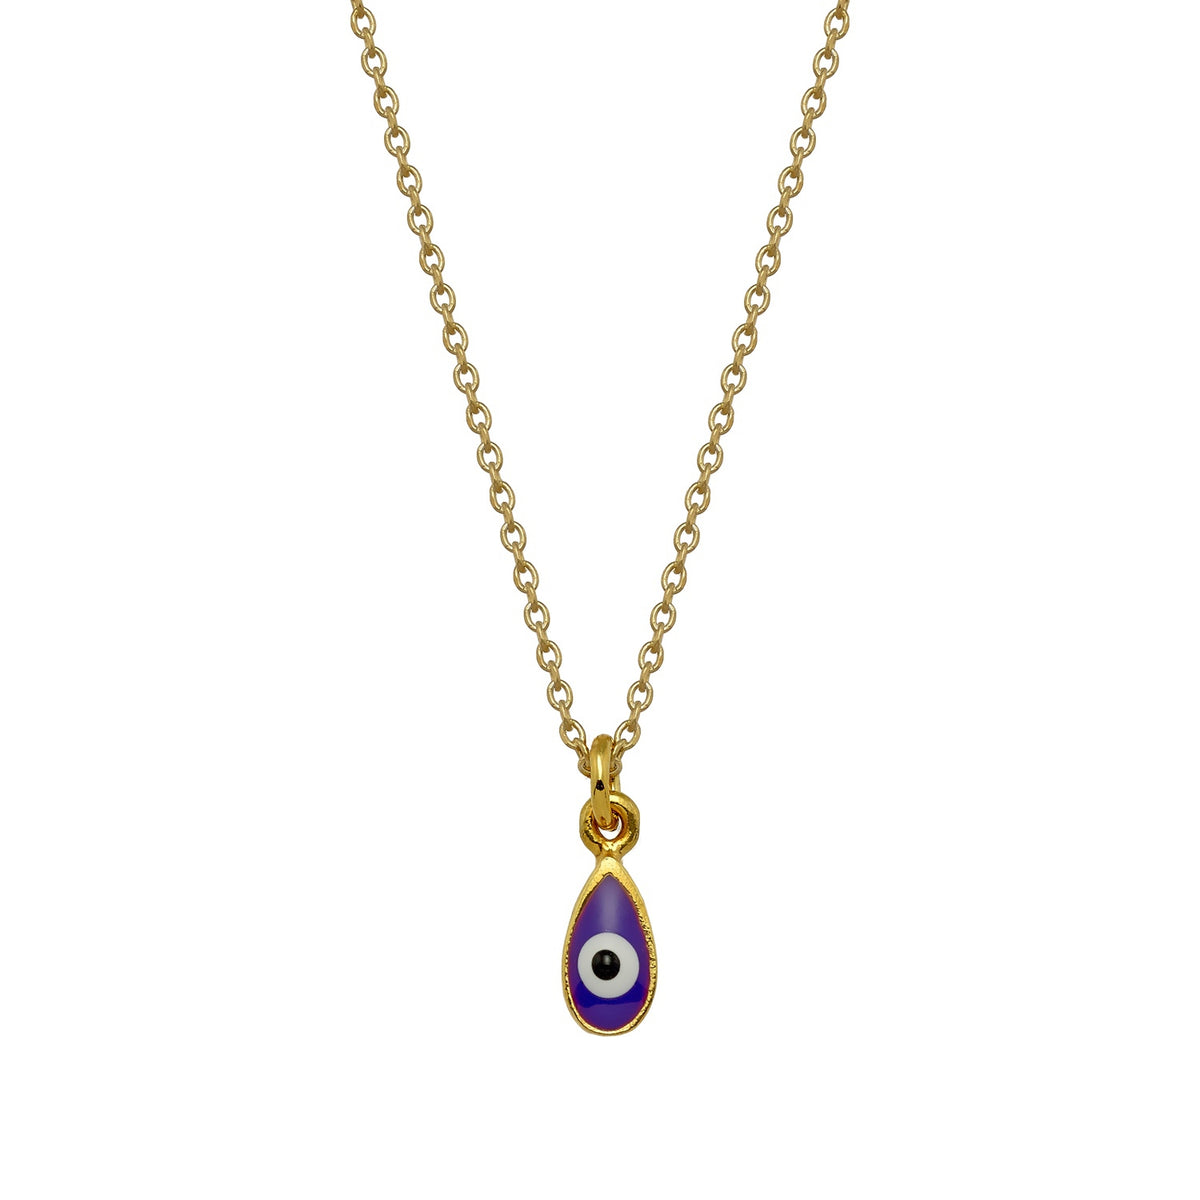 MATI | Drop Necklace | Purple Enamel | 18K Gold Plated 925 Silver